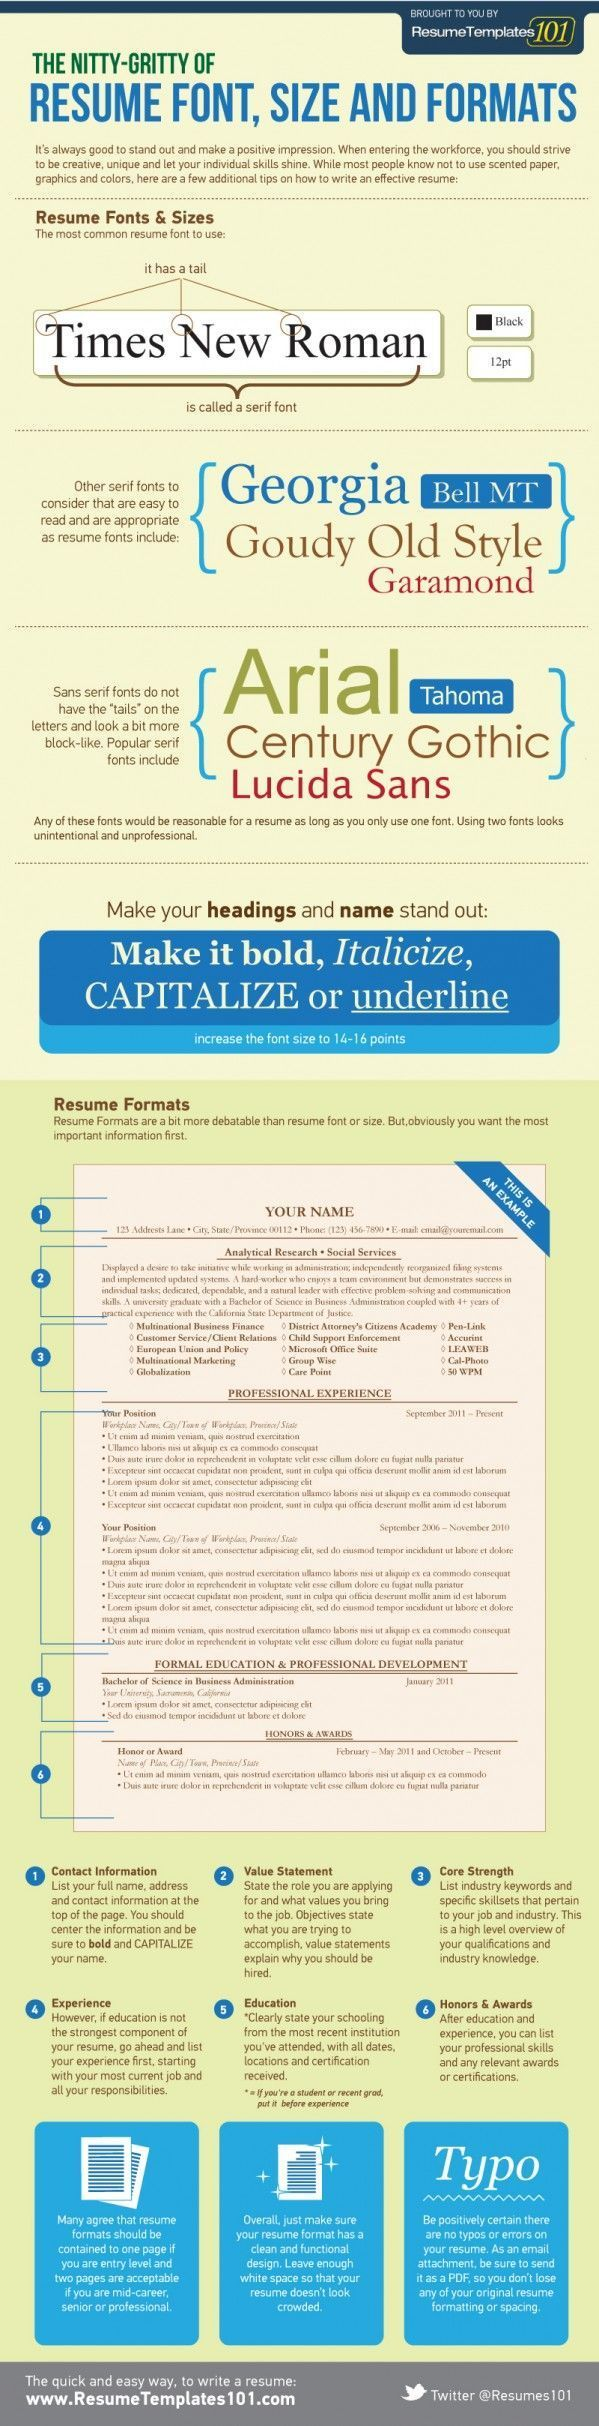 What resume fonts should you use? | Perfect resume, Writers write ...